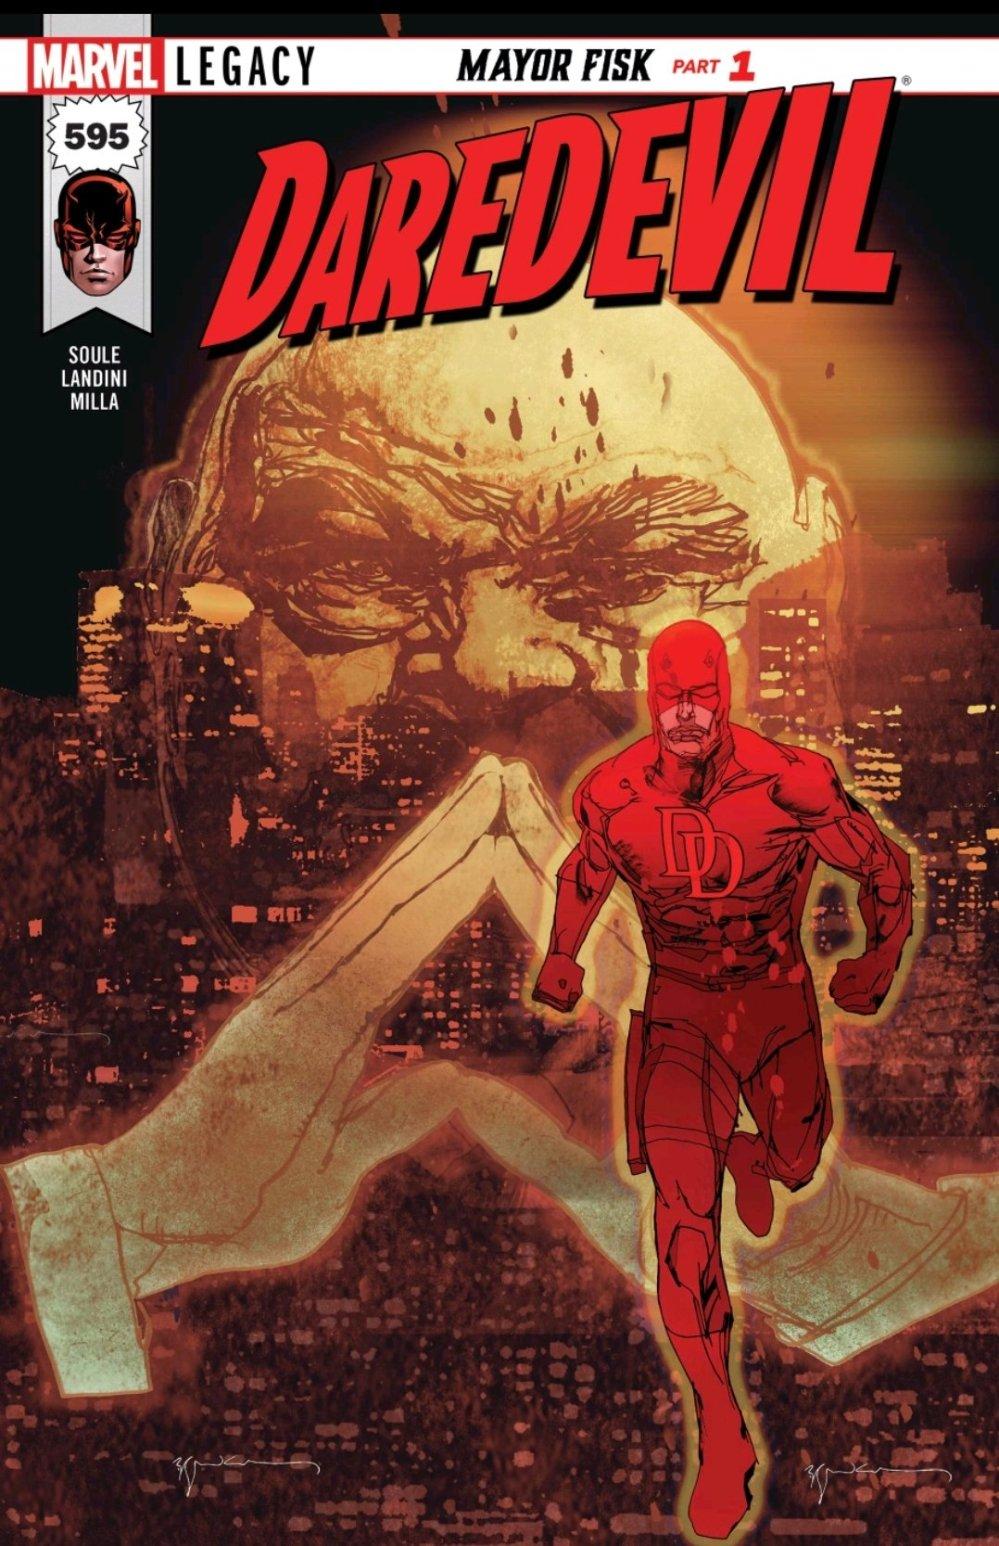 Cover of Daredevil issue 595 Mayor Fisk